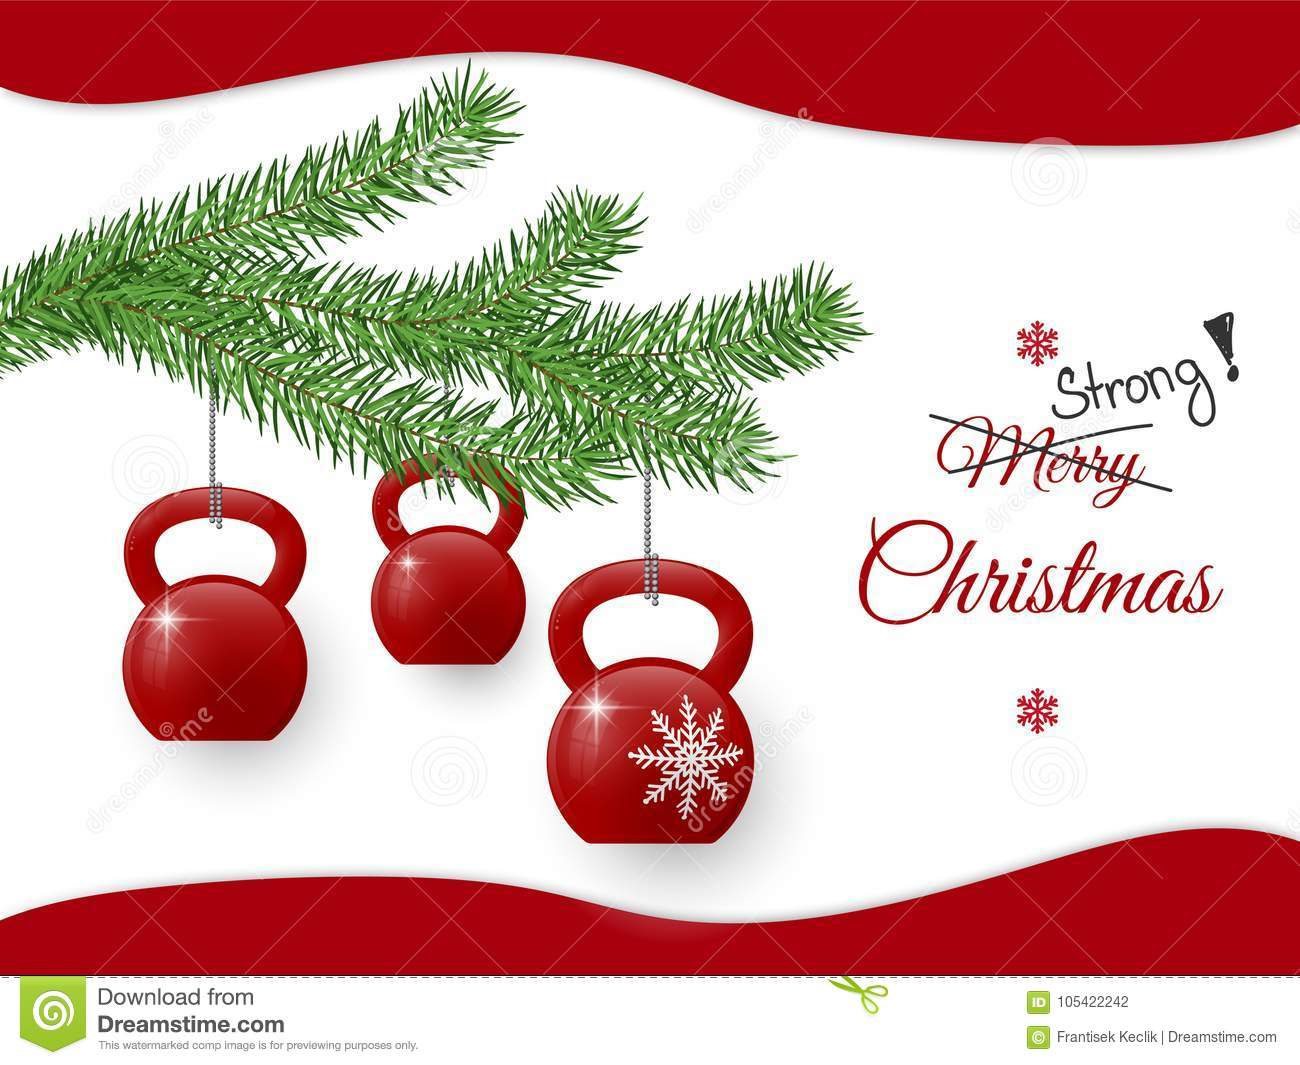 Christmas Greeting Card With Kettlebells And Pine Branch Stock